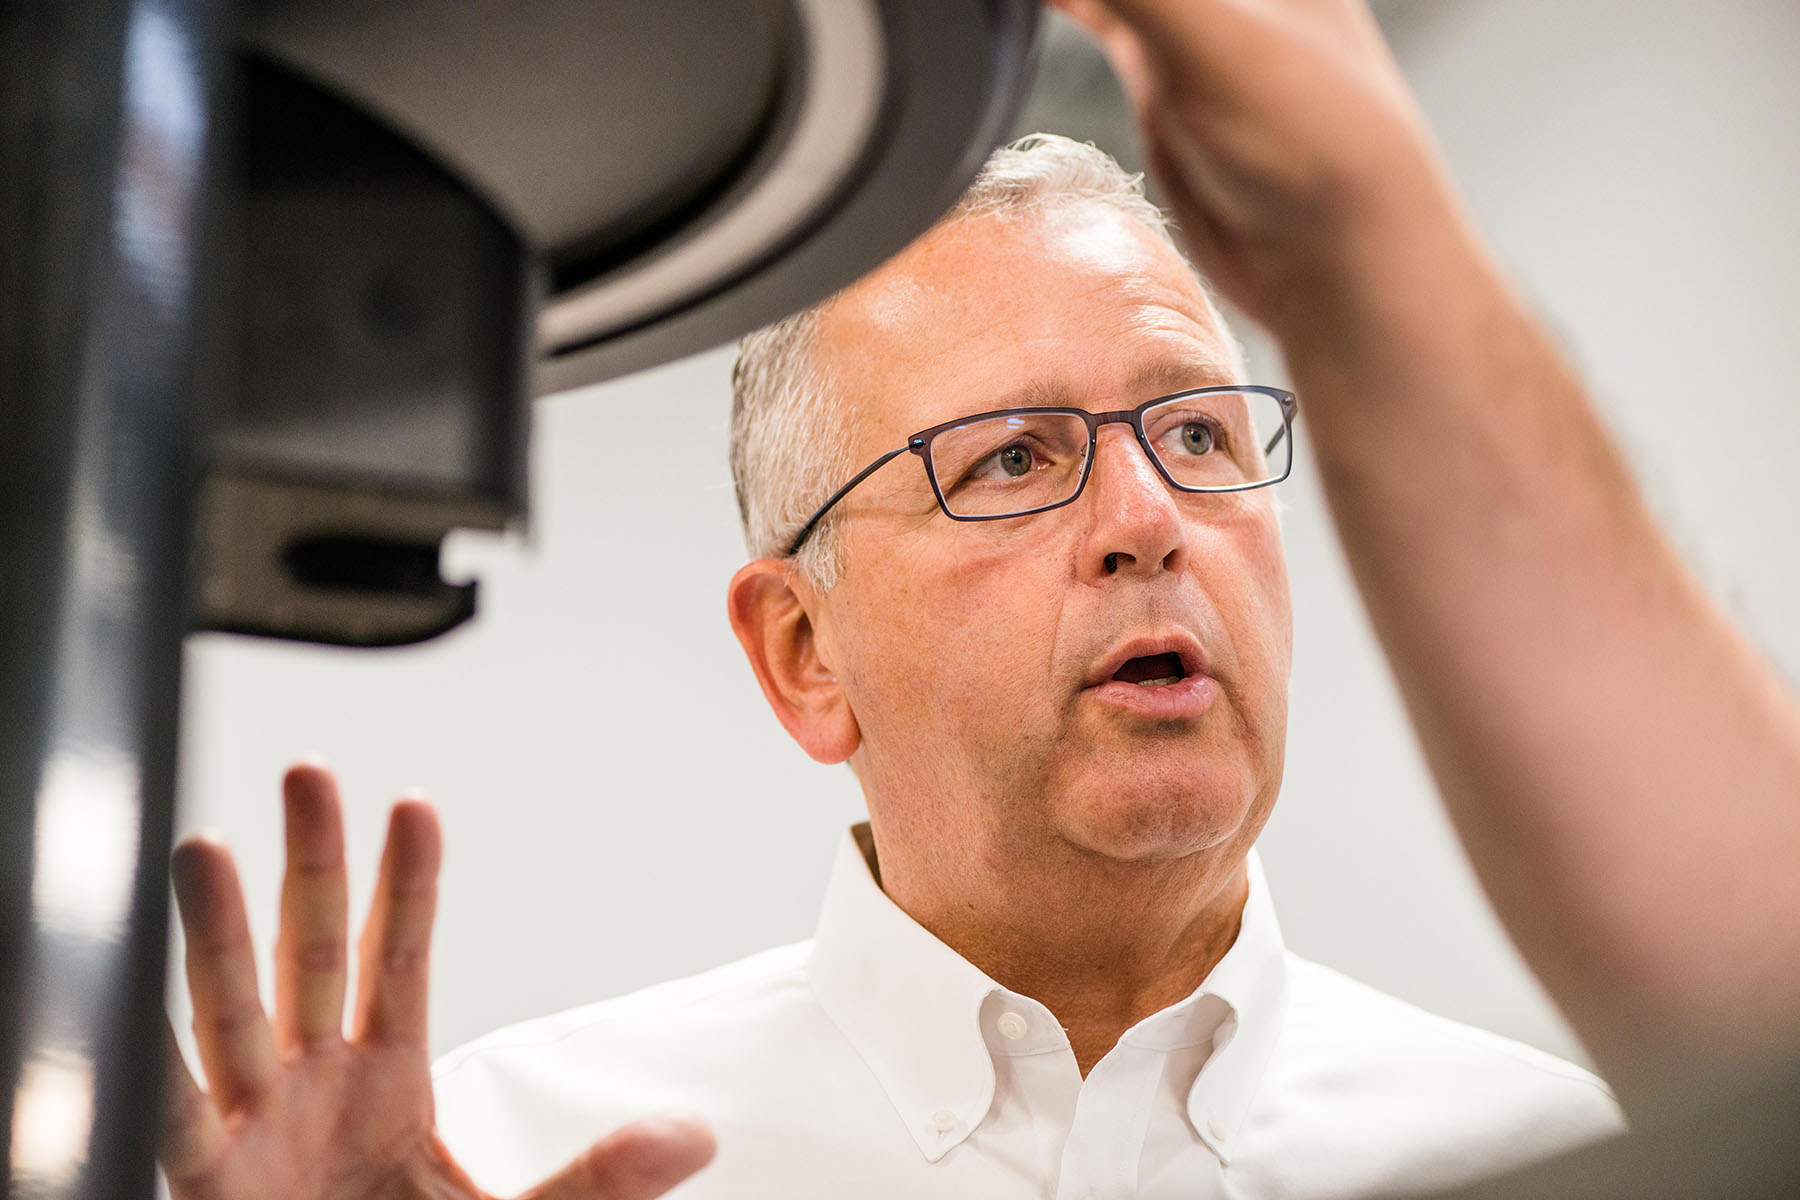 NAE Member Dr. Joseph DeSimone Wins Heinz Award for Technology, the Economy and Employment